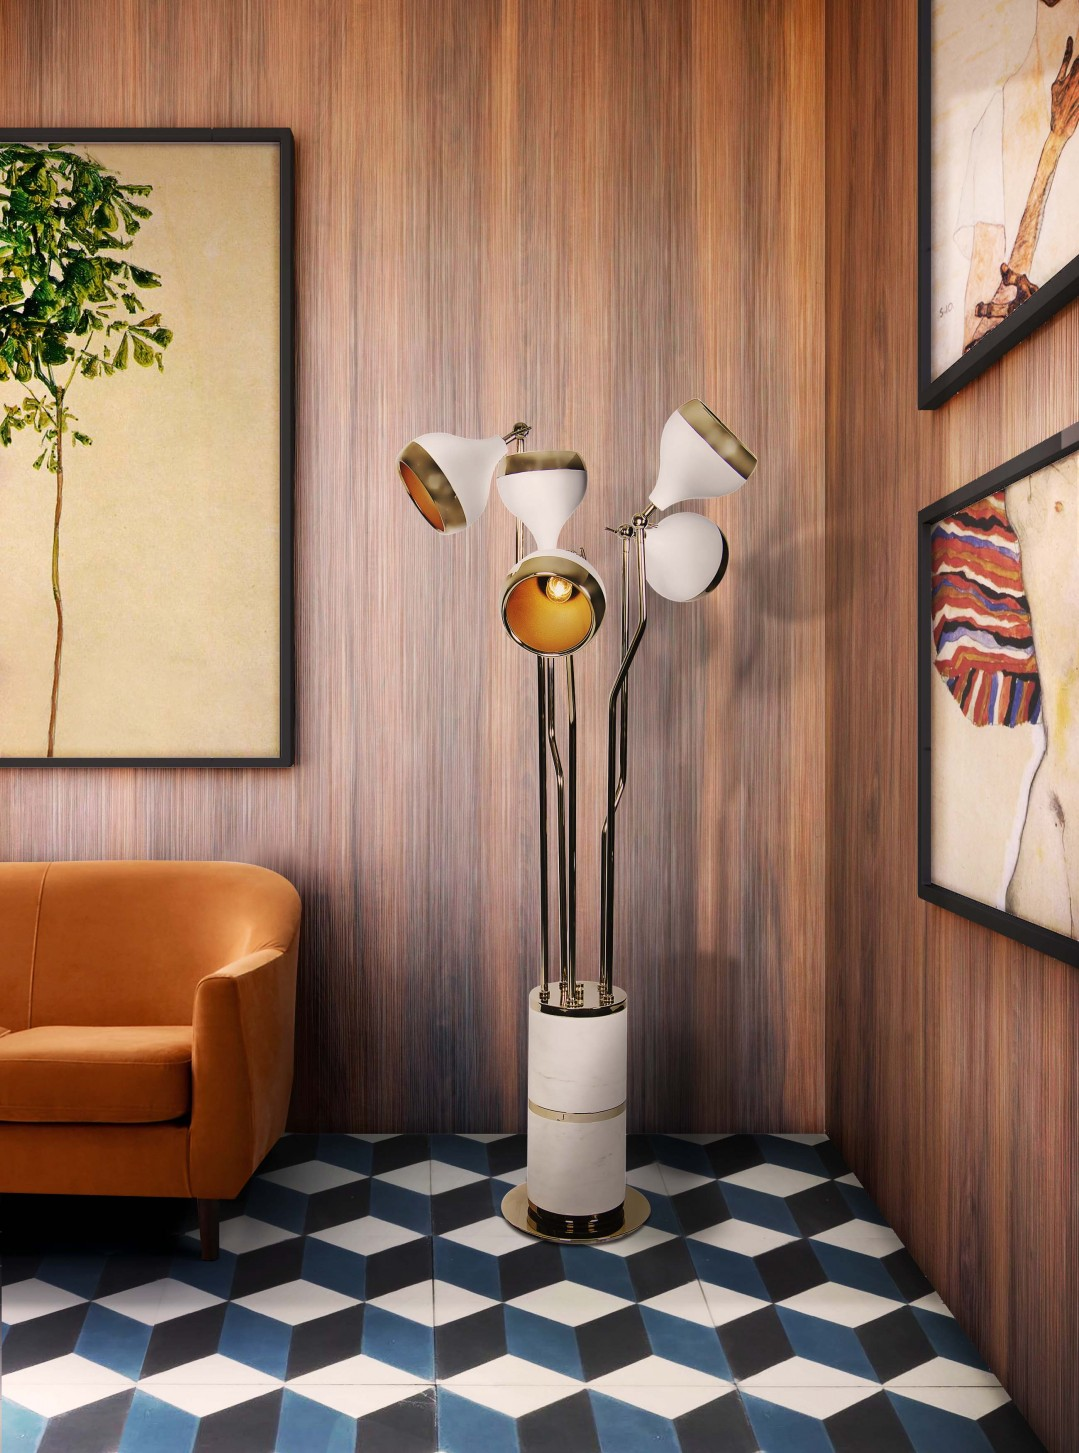 hanna floor lamp An In-Depth Look At Hanna Floor Lamp For Your Living Room Décor! An In Depth Look At Hanna Floor Lamp For Your Living Room D  cor 3